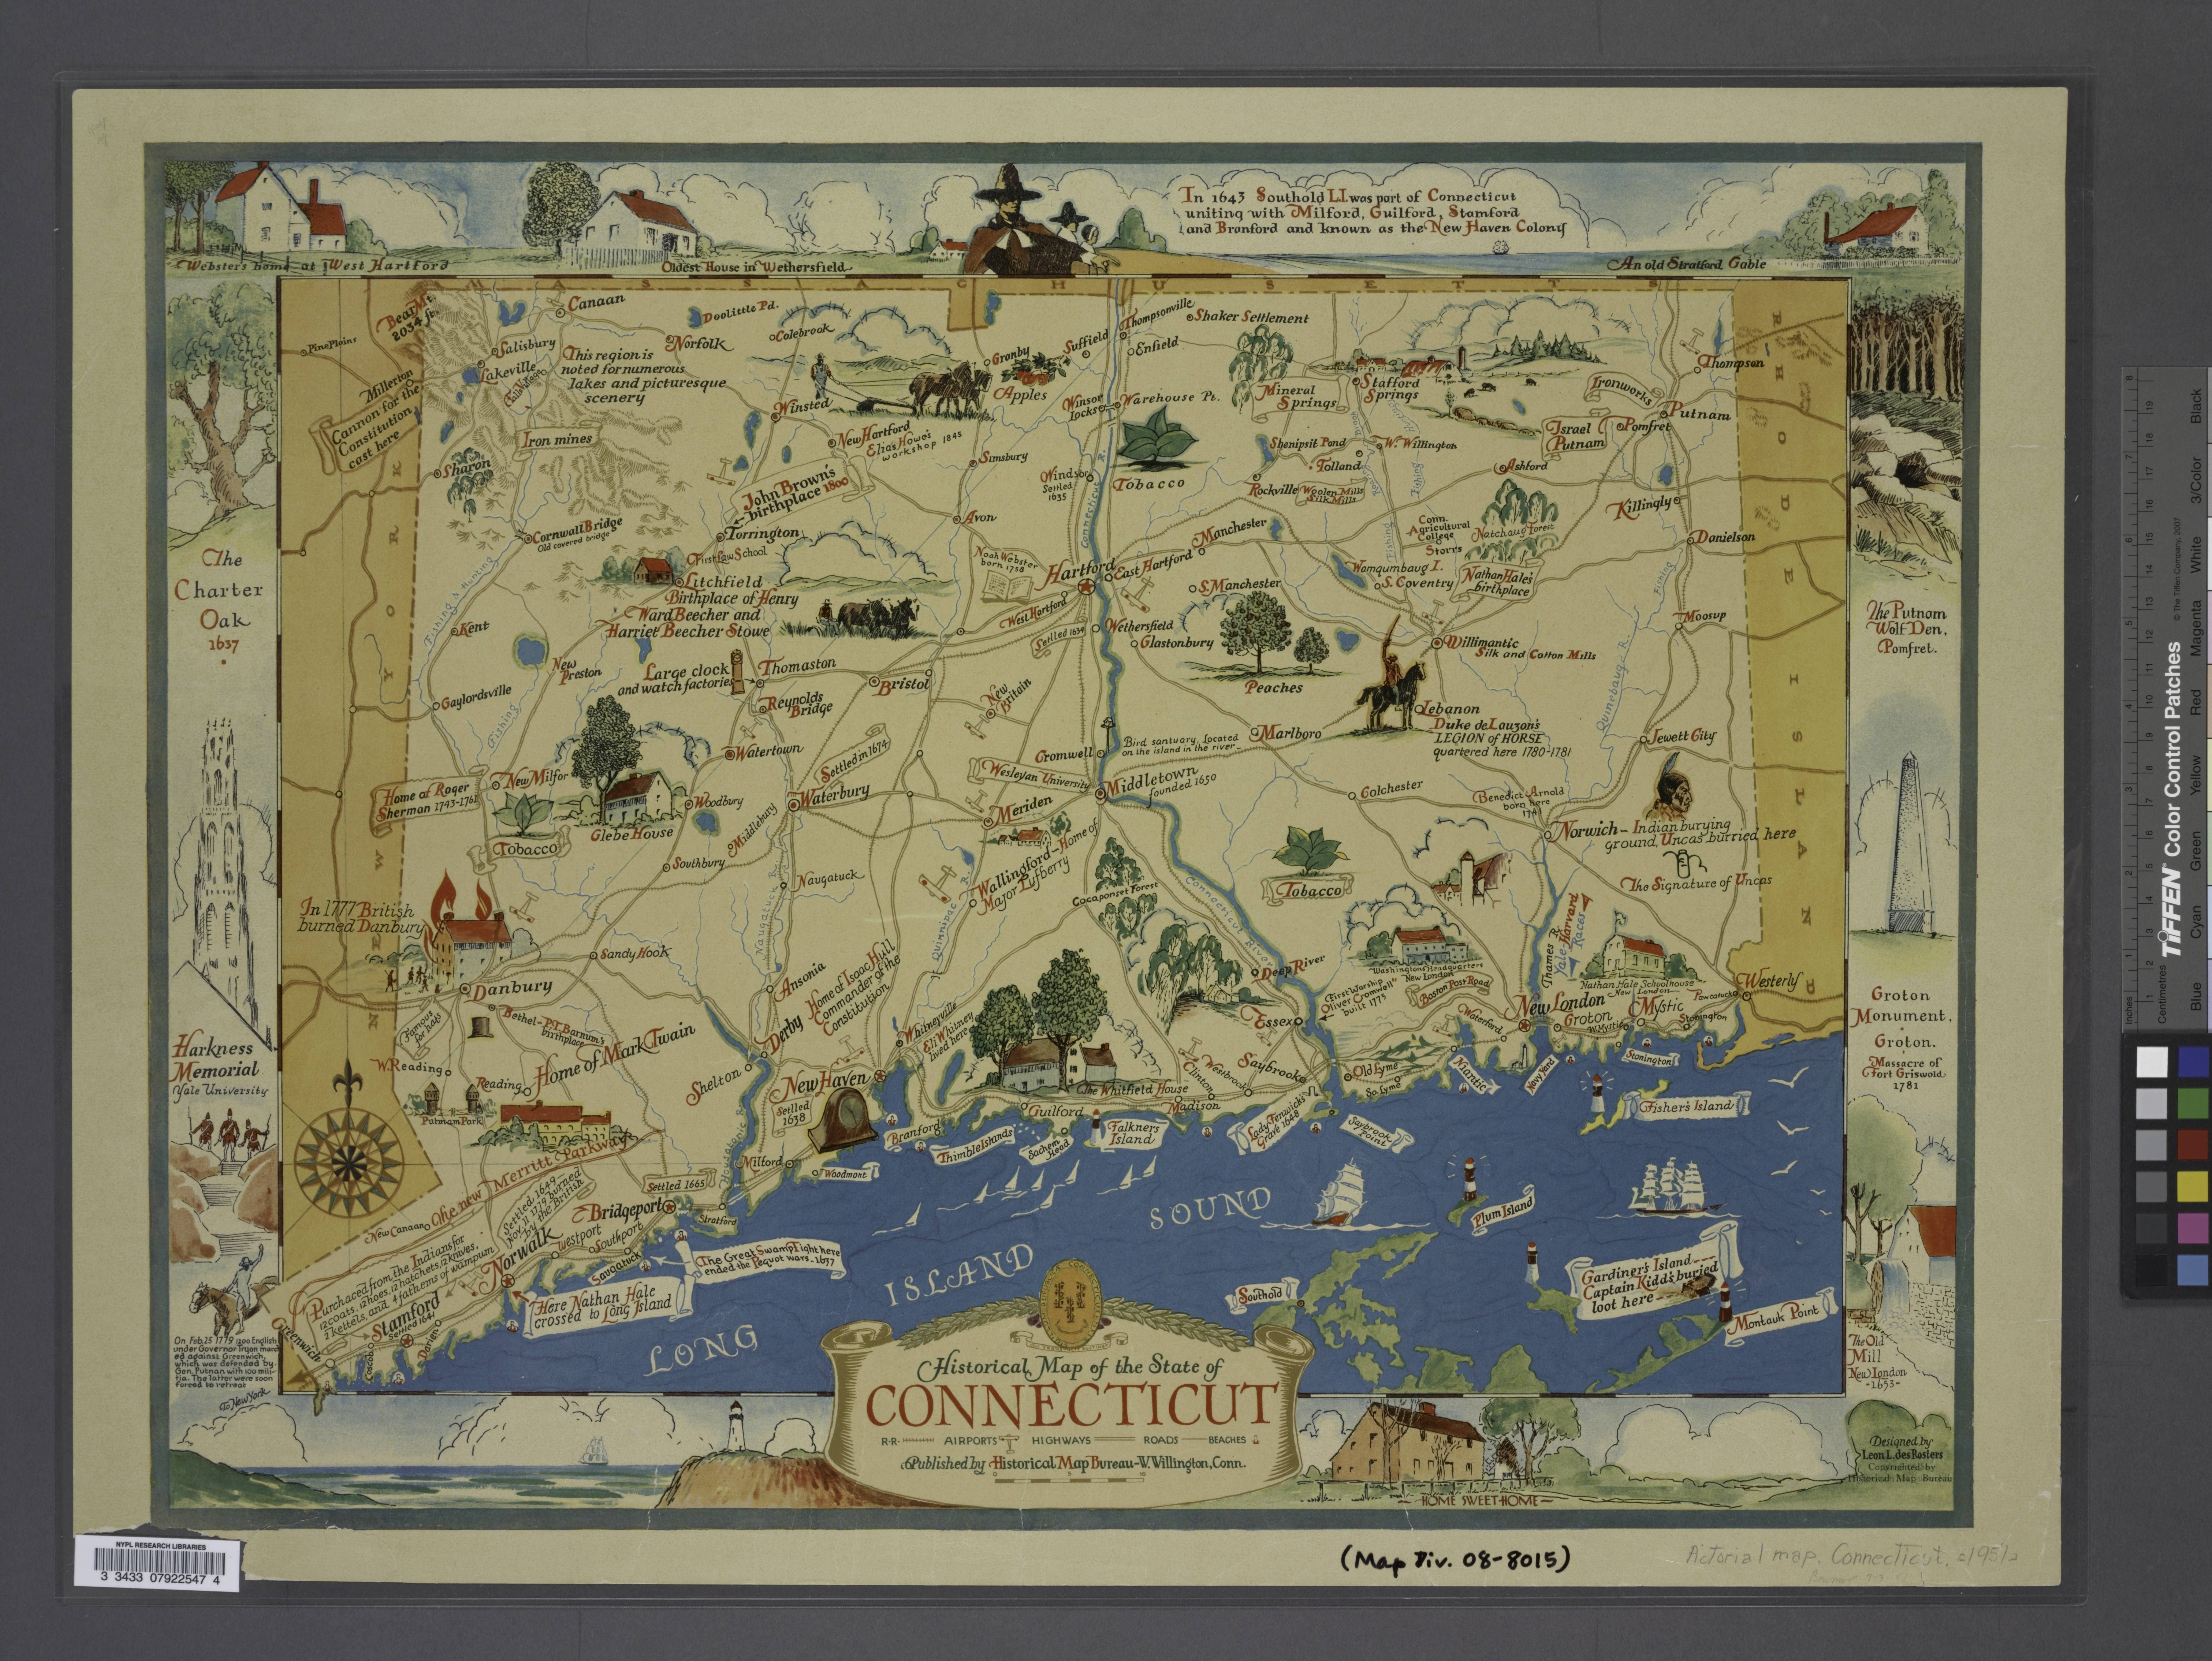 Historical map of the state of Connecticut